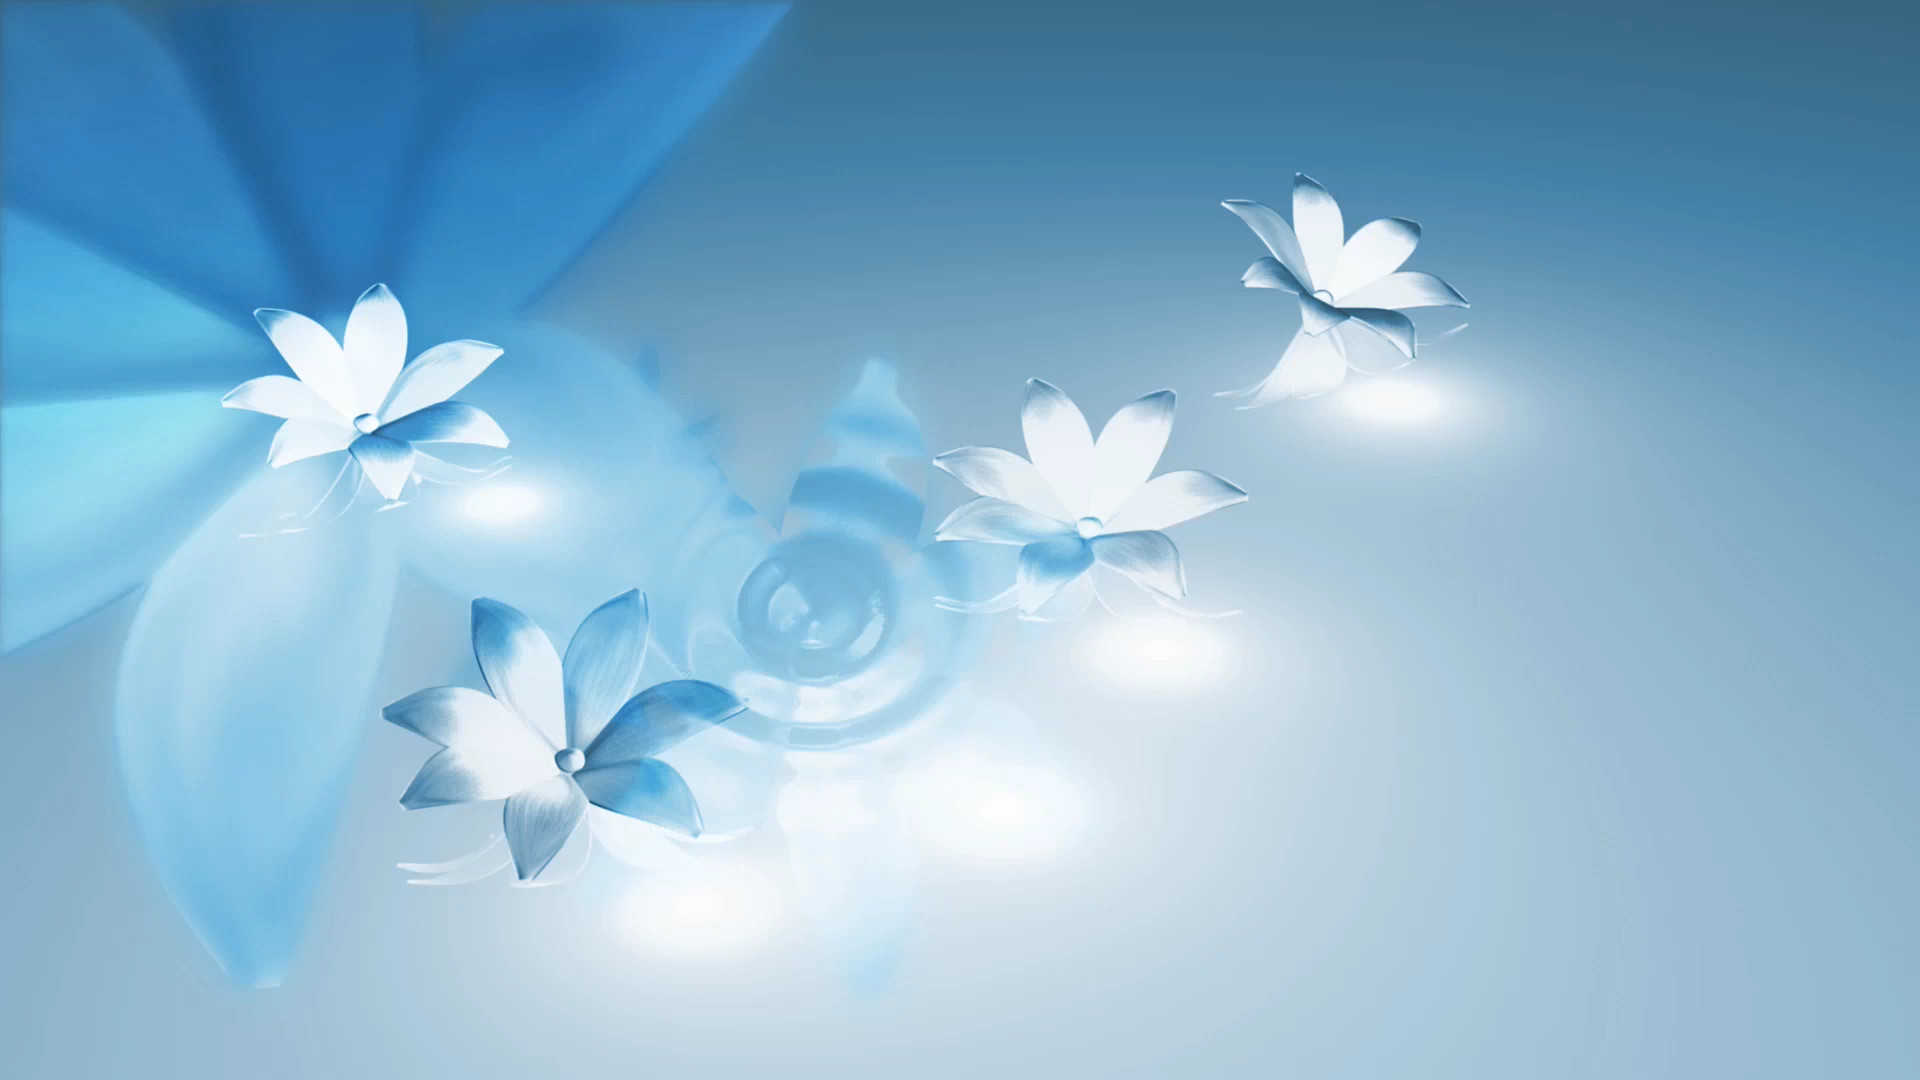 1920x1080 Blue Flower backgrounds